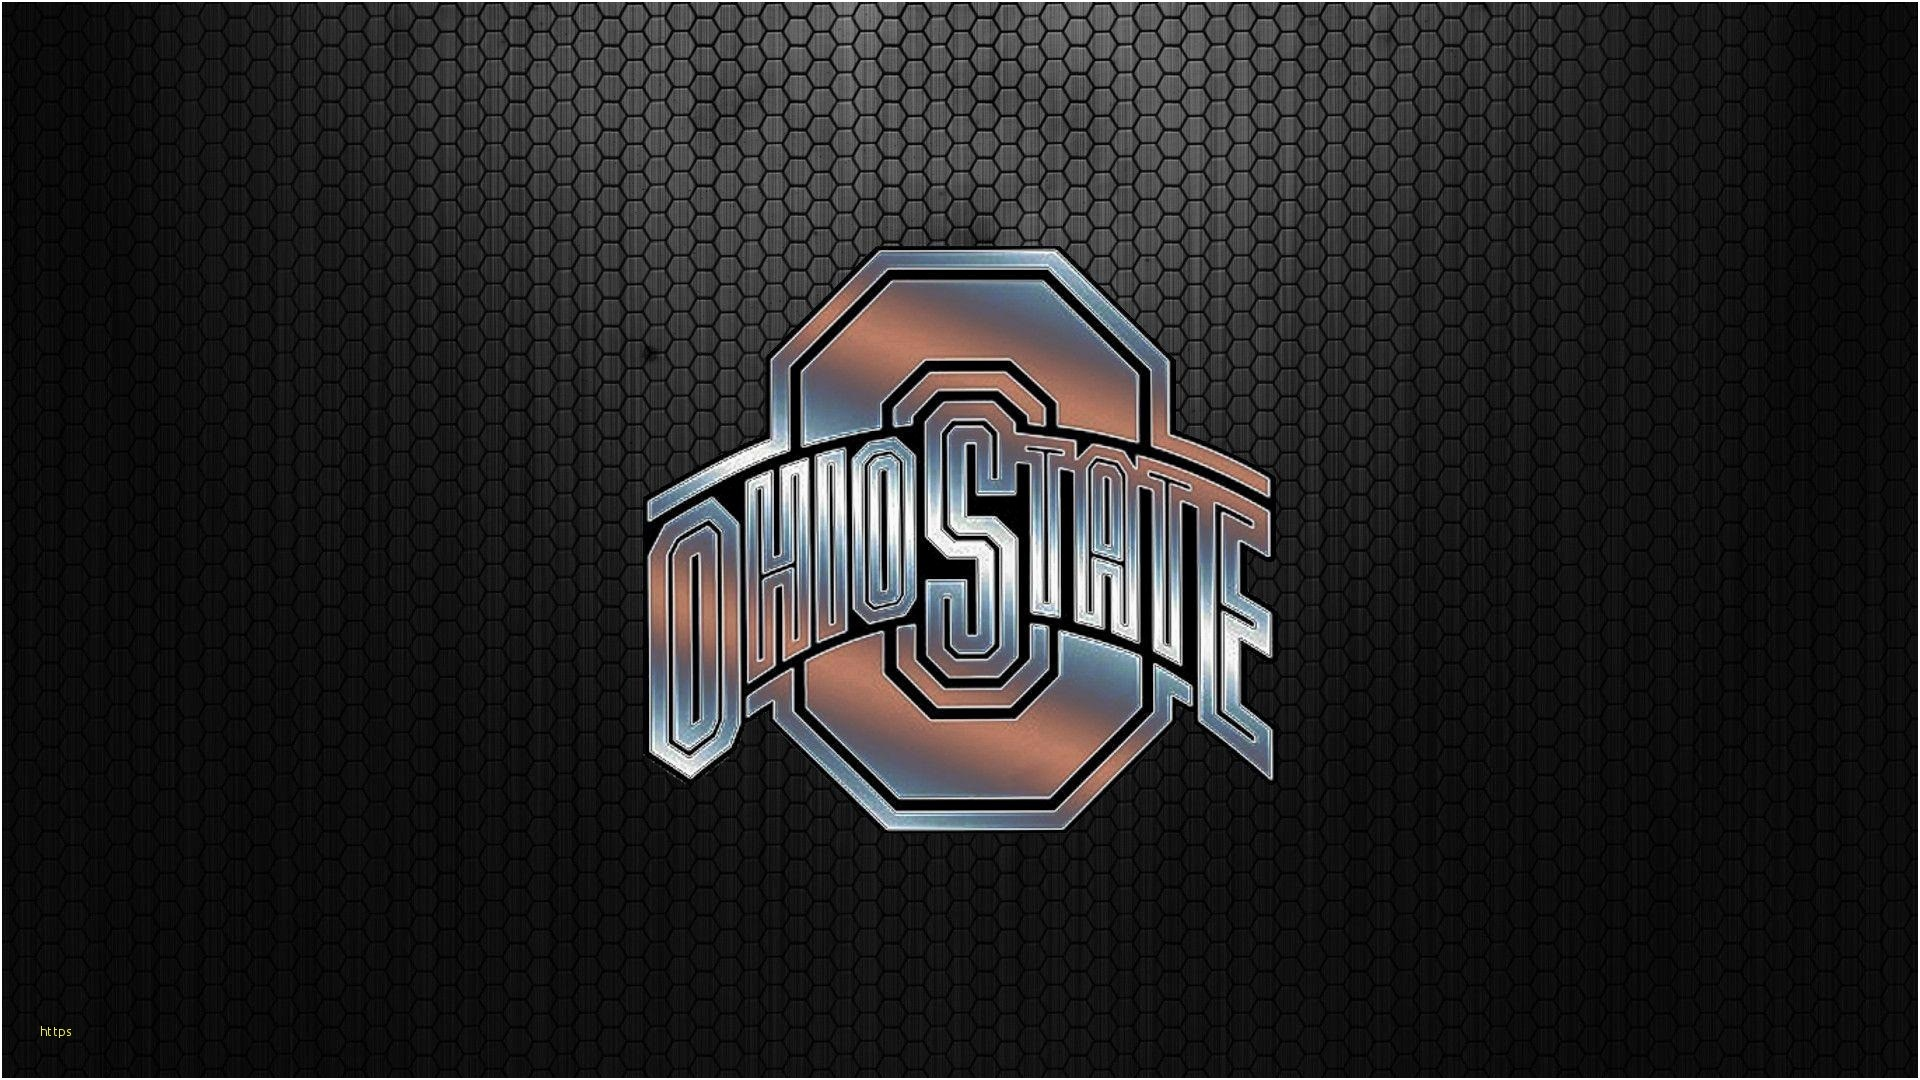 1920x1080 Ohio State Wallpaper Lovely Ohio State Football Backgrounds Wallpaper Cave